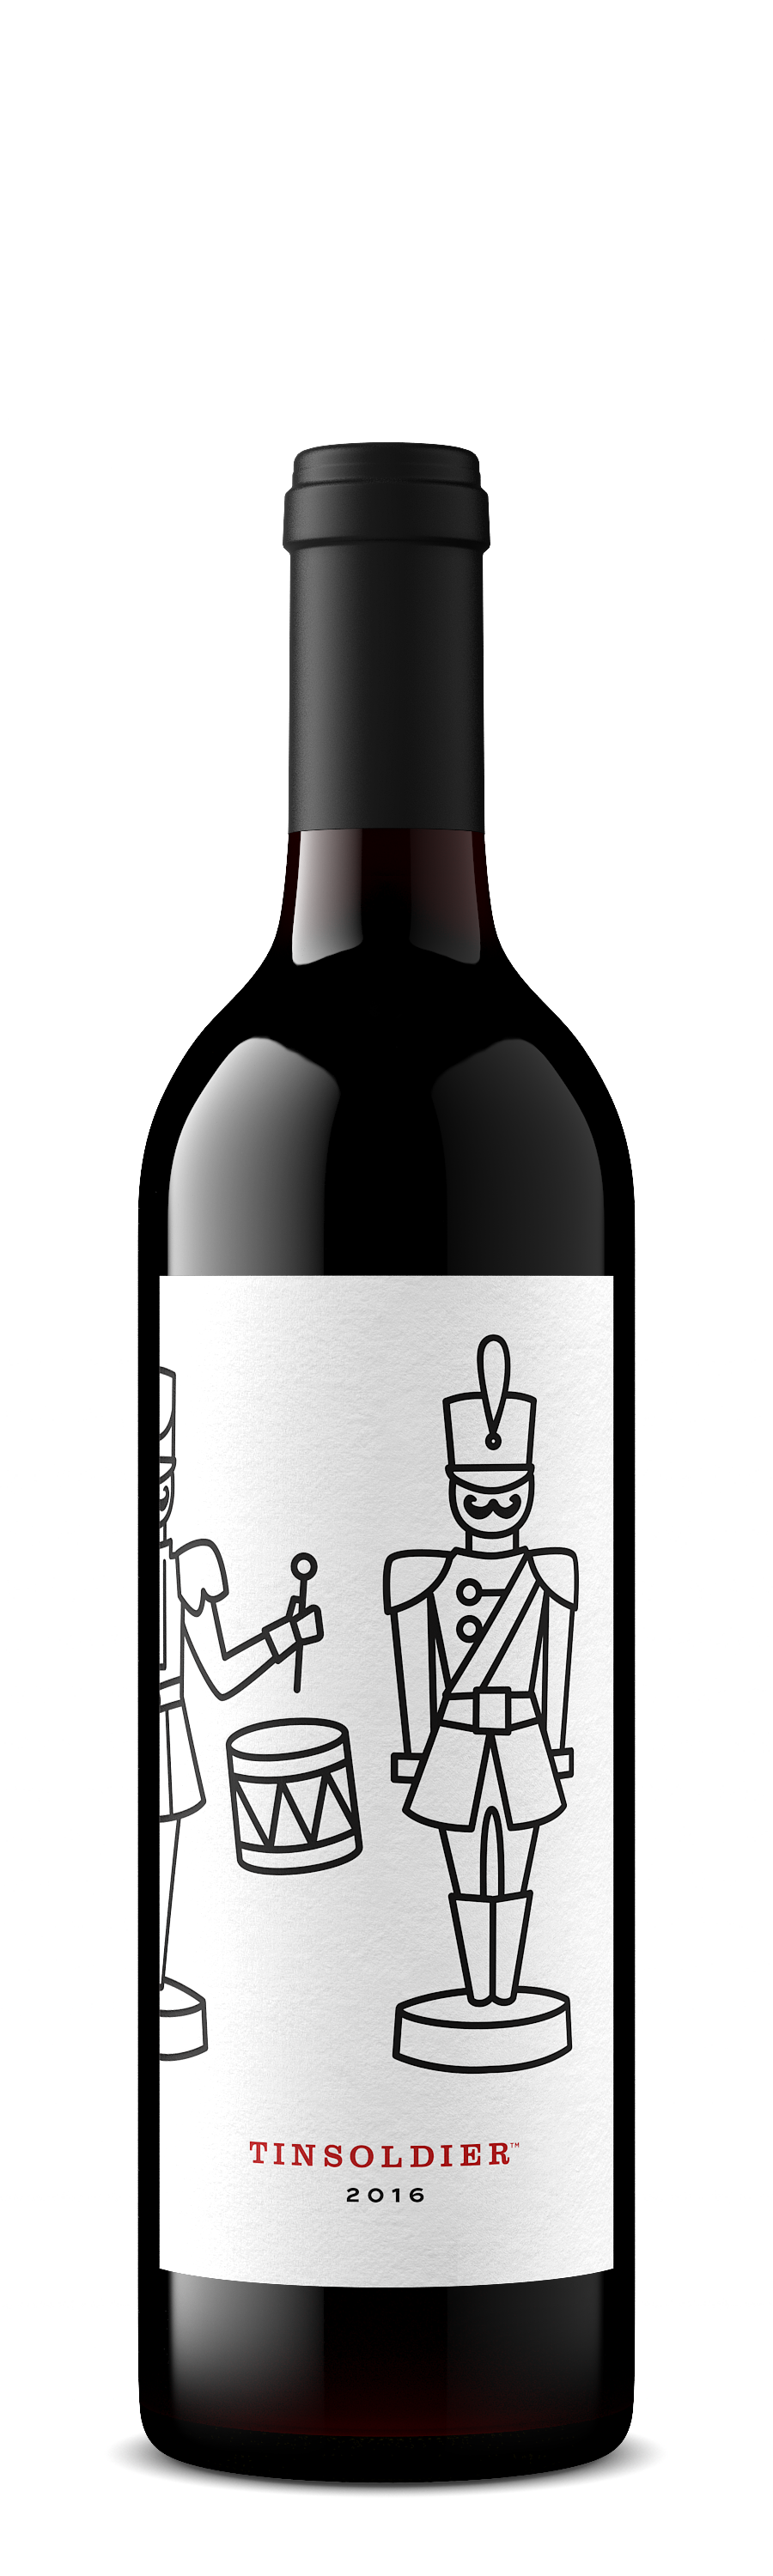 2016 Tin Soldier by ToyMaker Cellars Cabernet Sauvignon, Red Wine, Napa Valley, California, made by winemaker Martha McClellan of Sloan Estate, Checkerboard Vineyards, Levy & McClellan, and formerly of Harlan Estate. Best Napa Valley Grand Cru red wines.